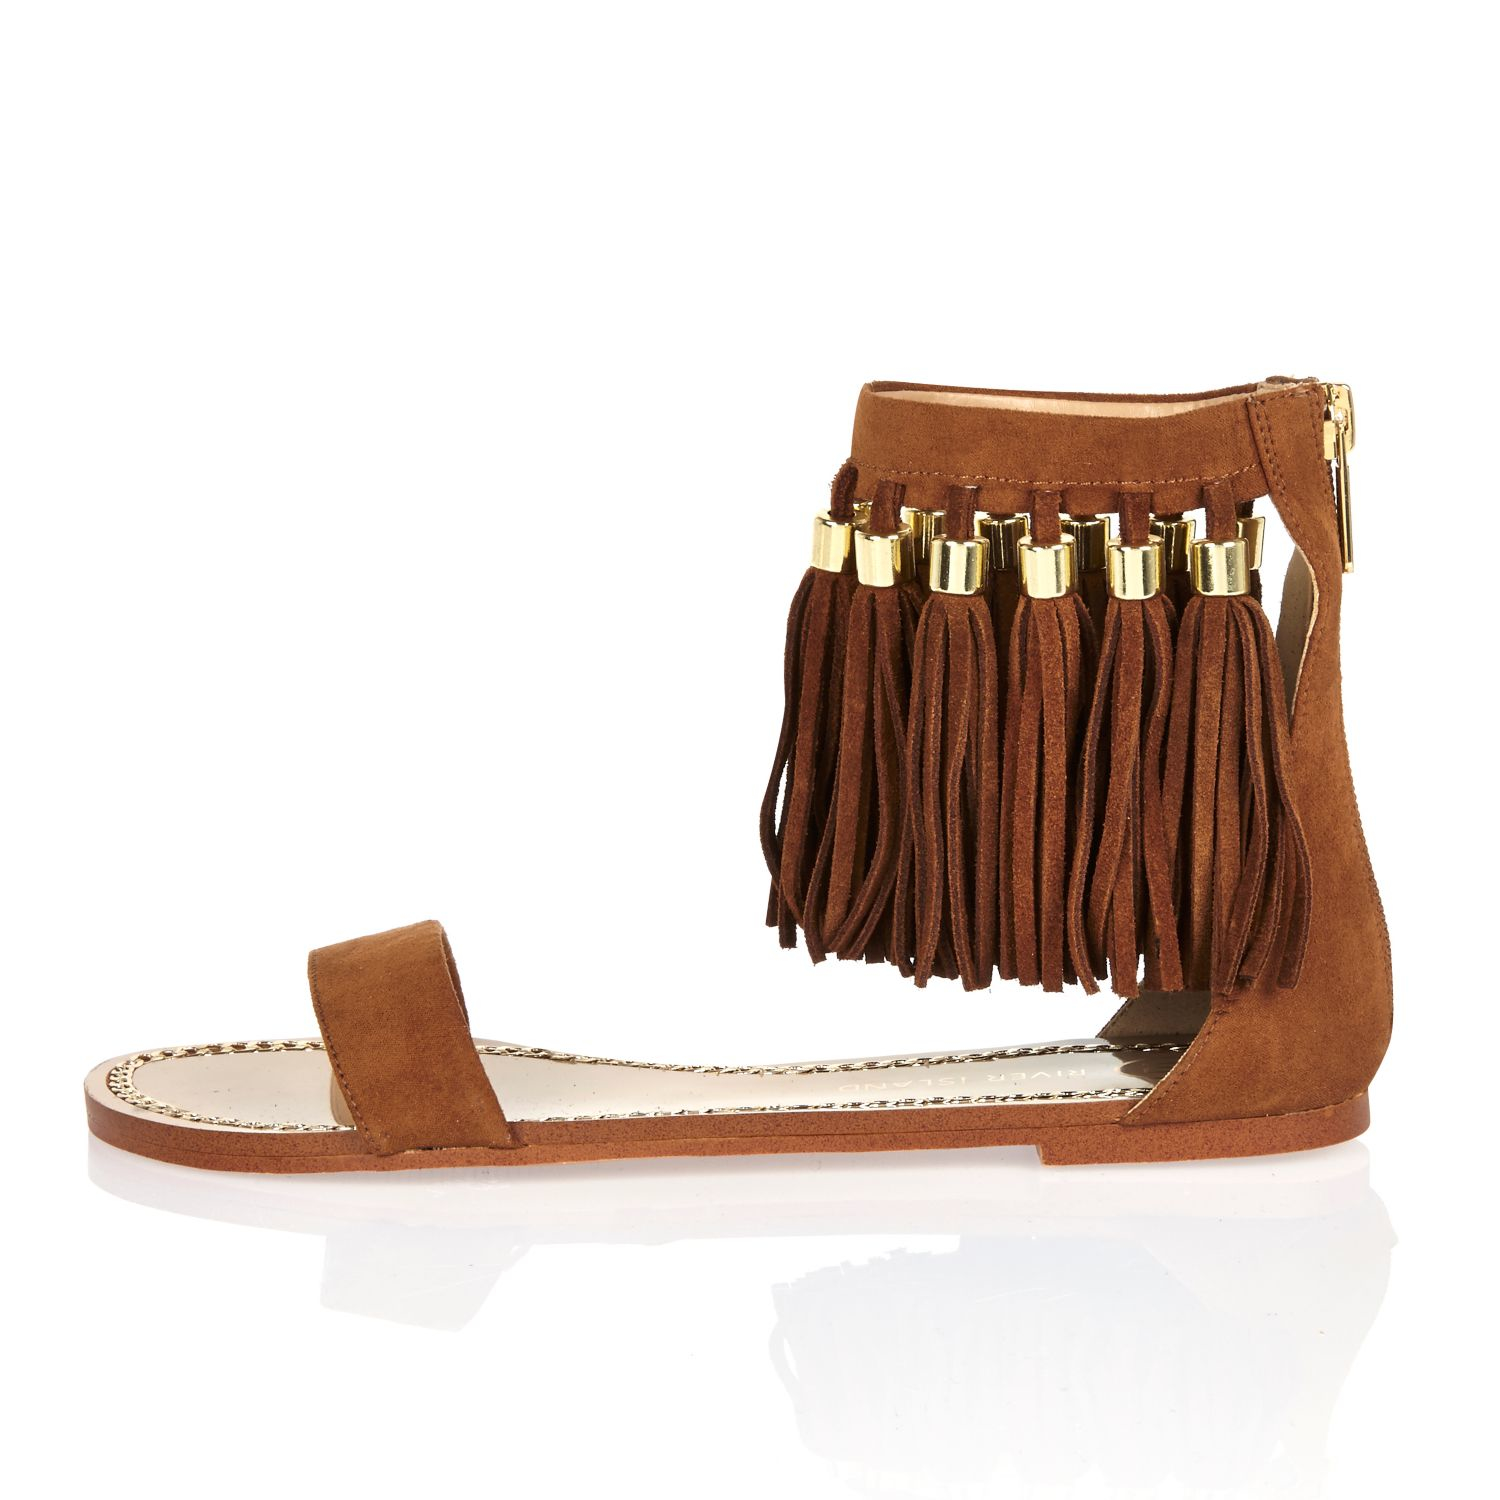 150c4e9a551d Lyst - River Island Tan Brown Tassel Sandals in Brown